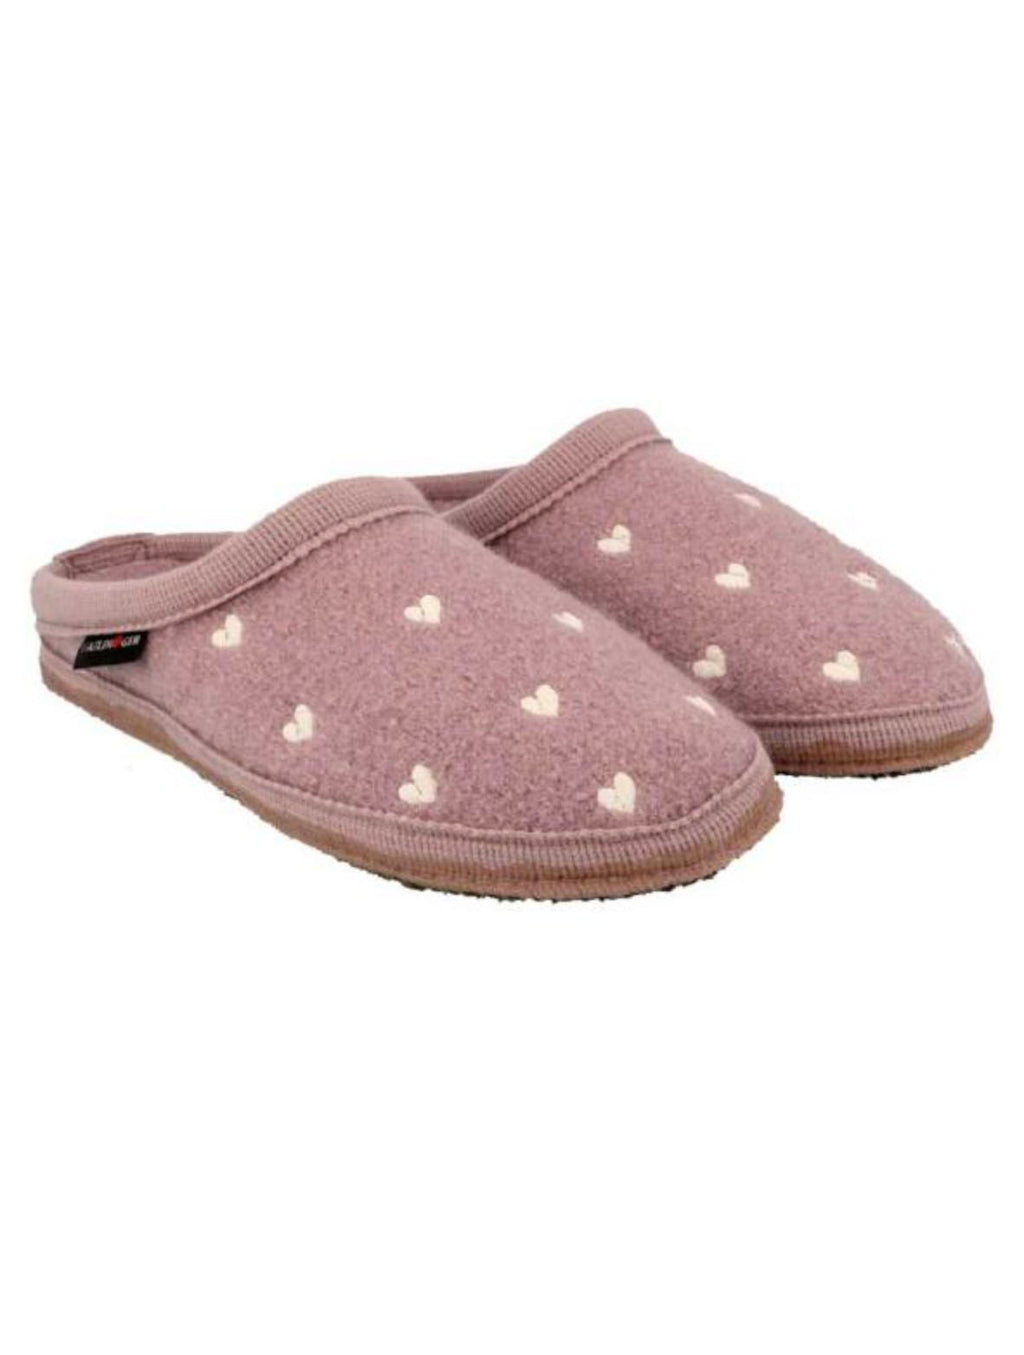 Haflinger Hearts Slipper in Rosewood